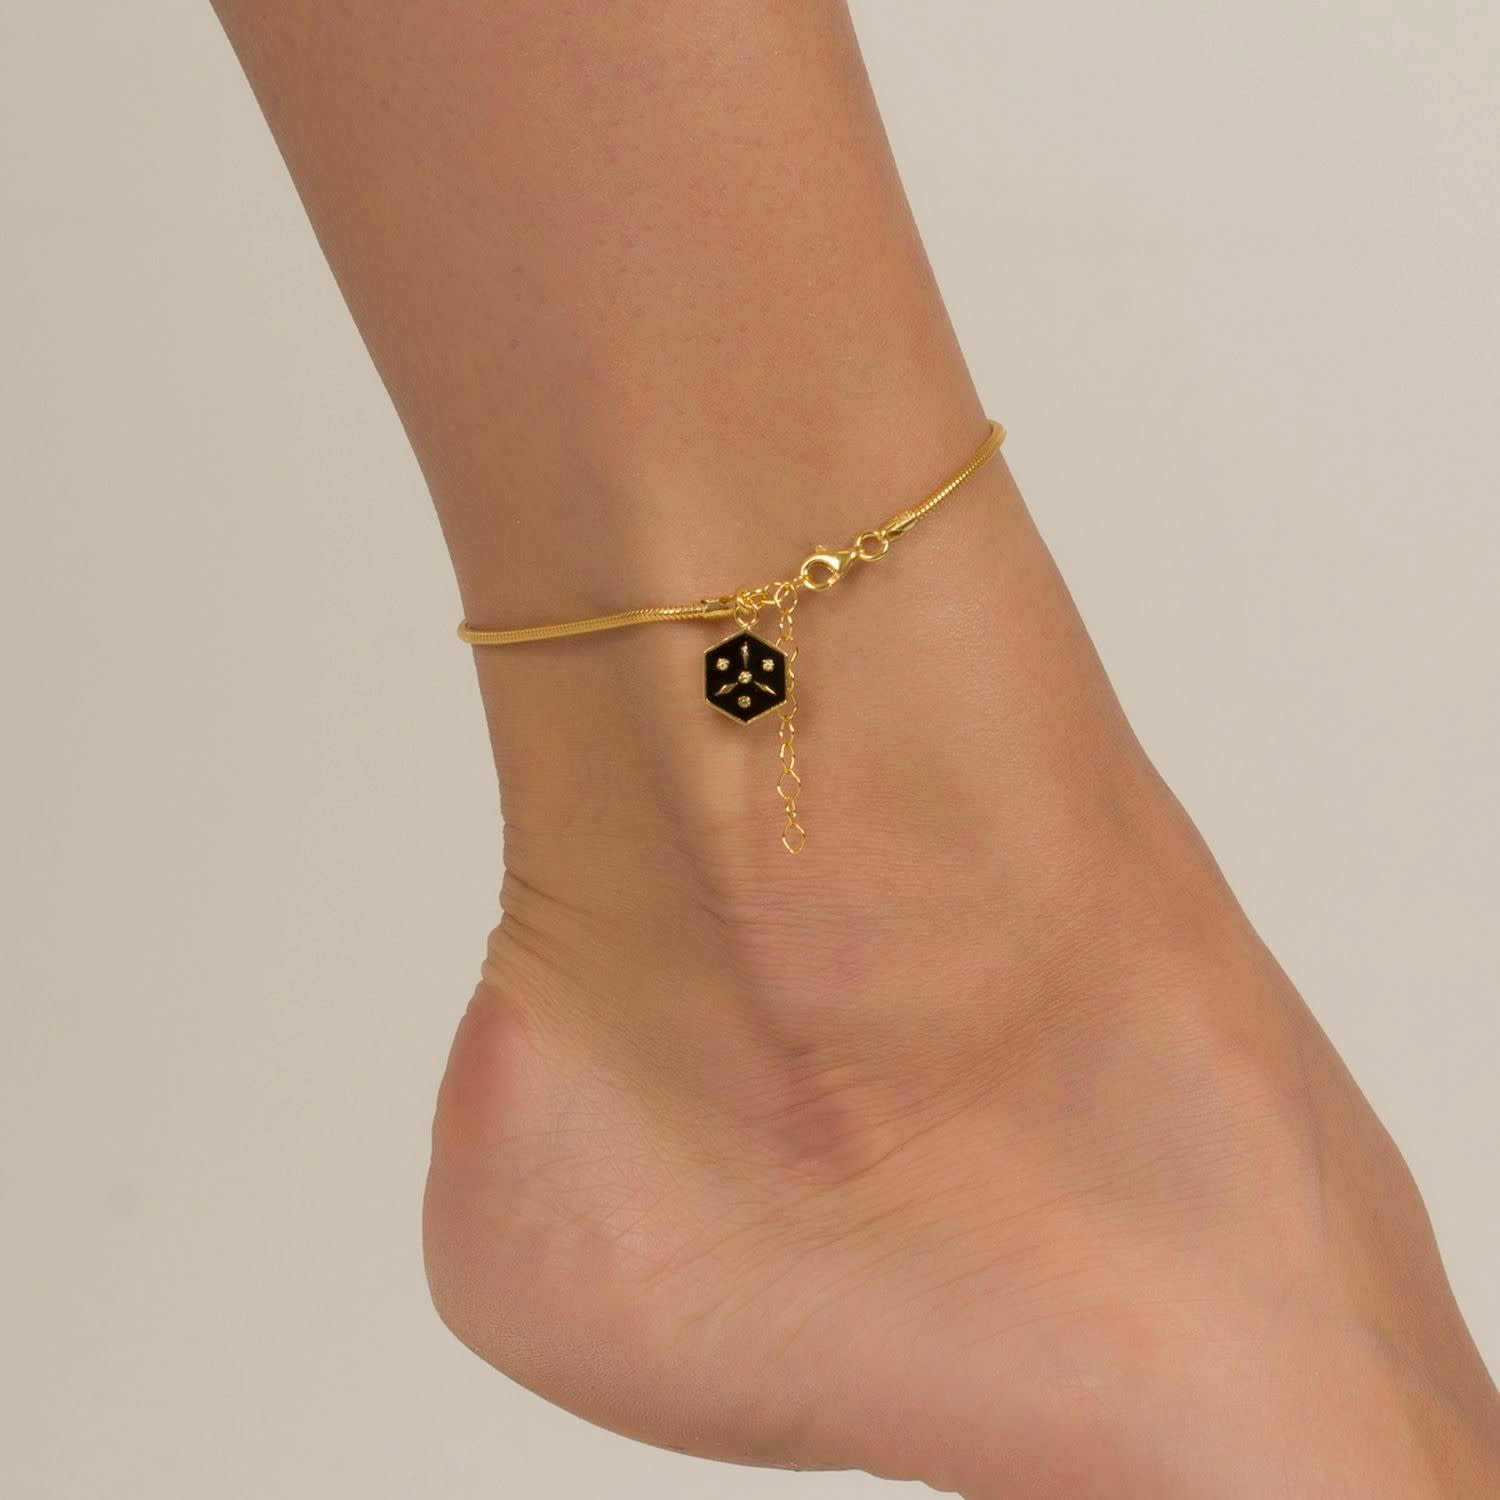 find chain heart gold anklet pages s pin facebook com cute new